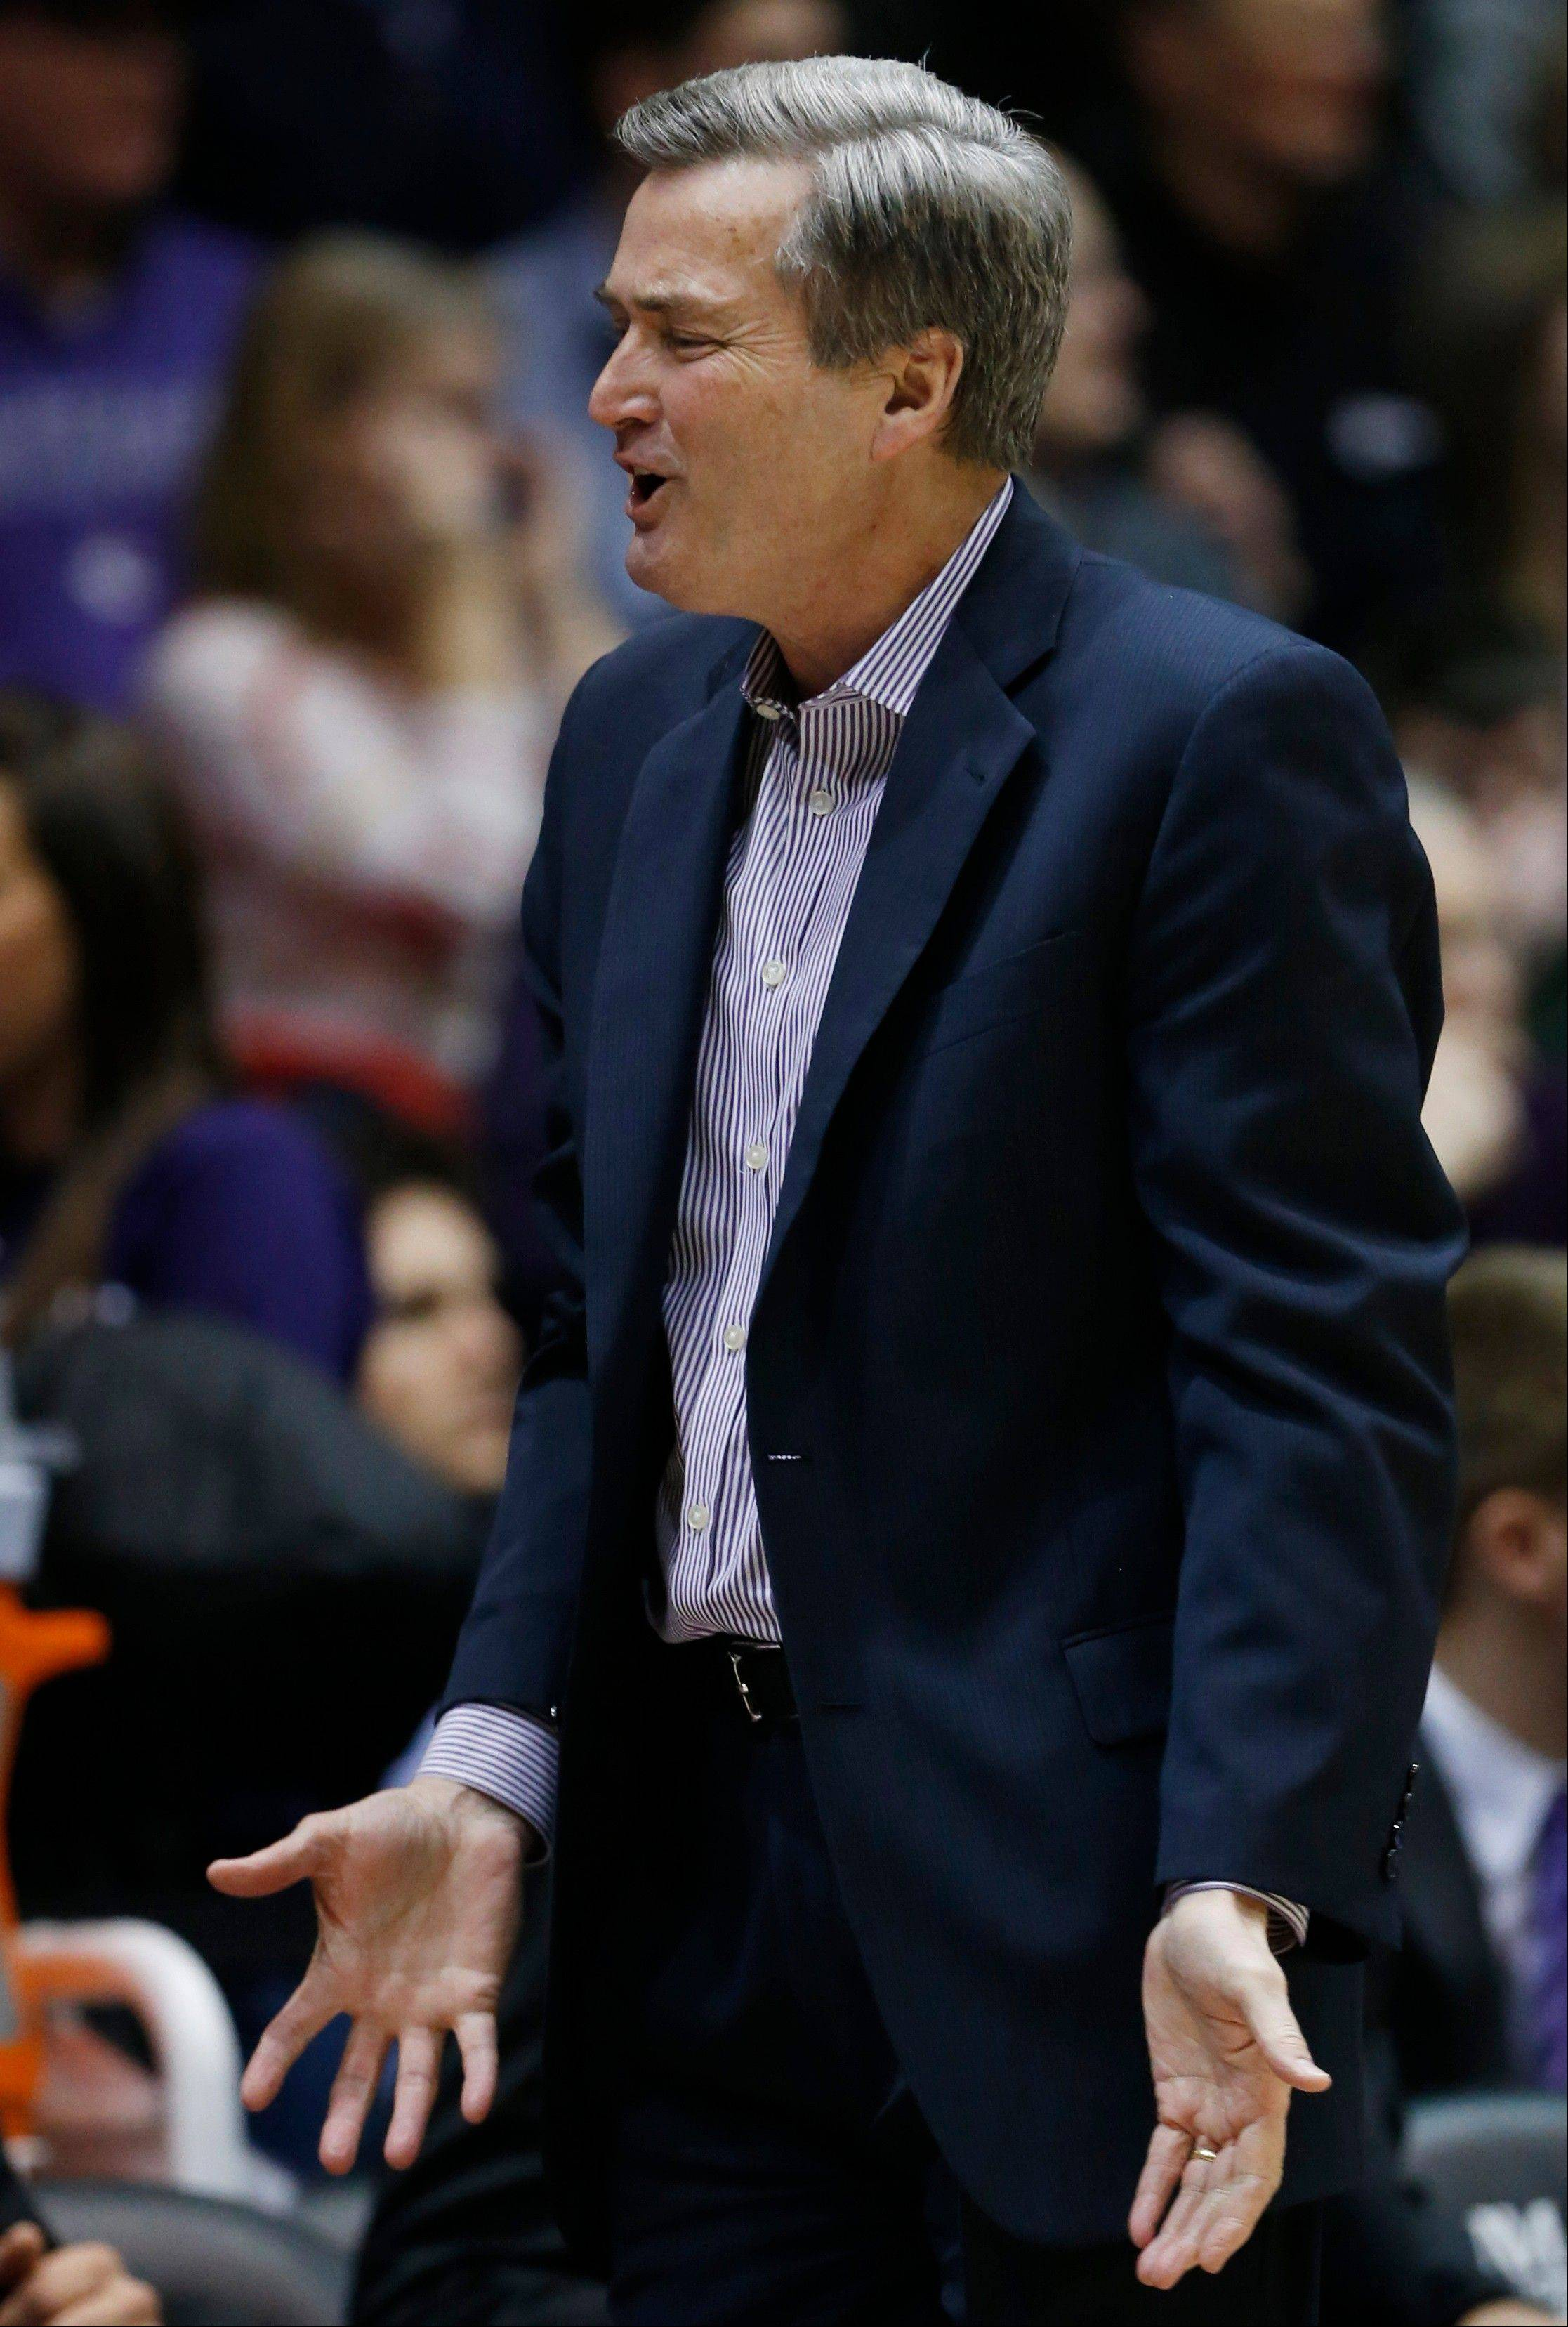 After opening the Big Ten season with loses to highly ranked Michigan and Minnesota, Bill Carmody's Northwestern team has fallen to 9-6 on the season. The Wildcats have gone 3-6 in their last nine games.